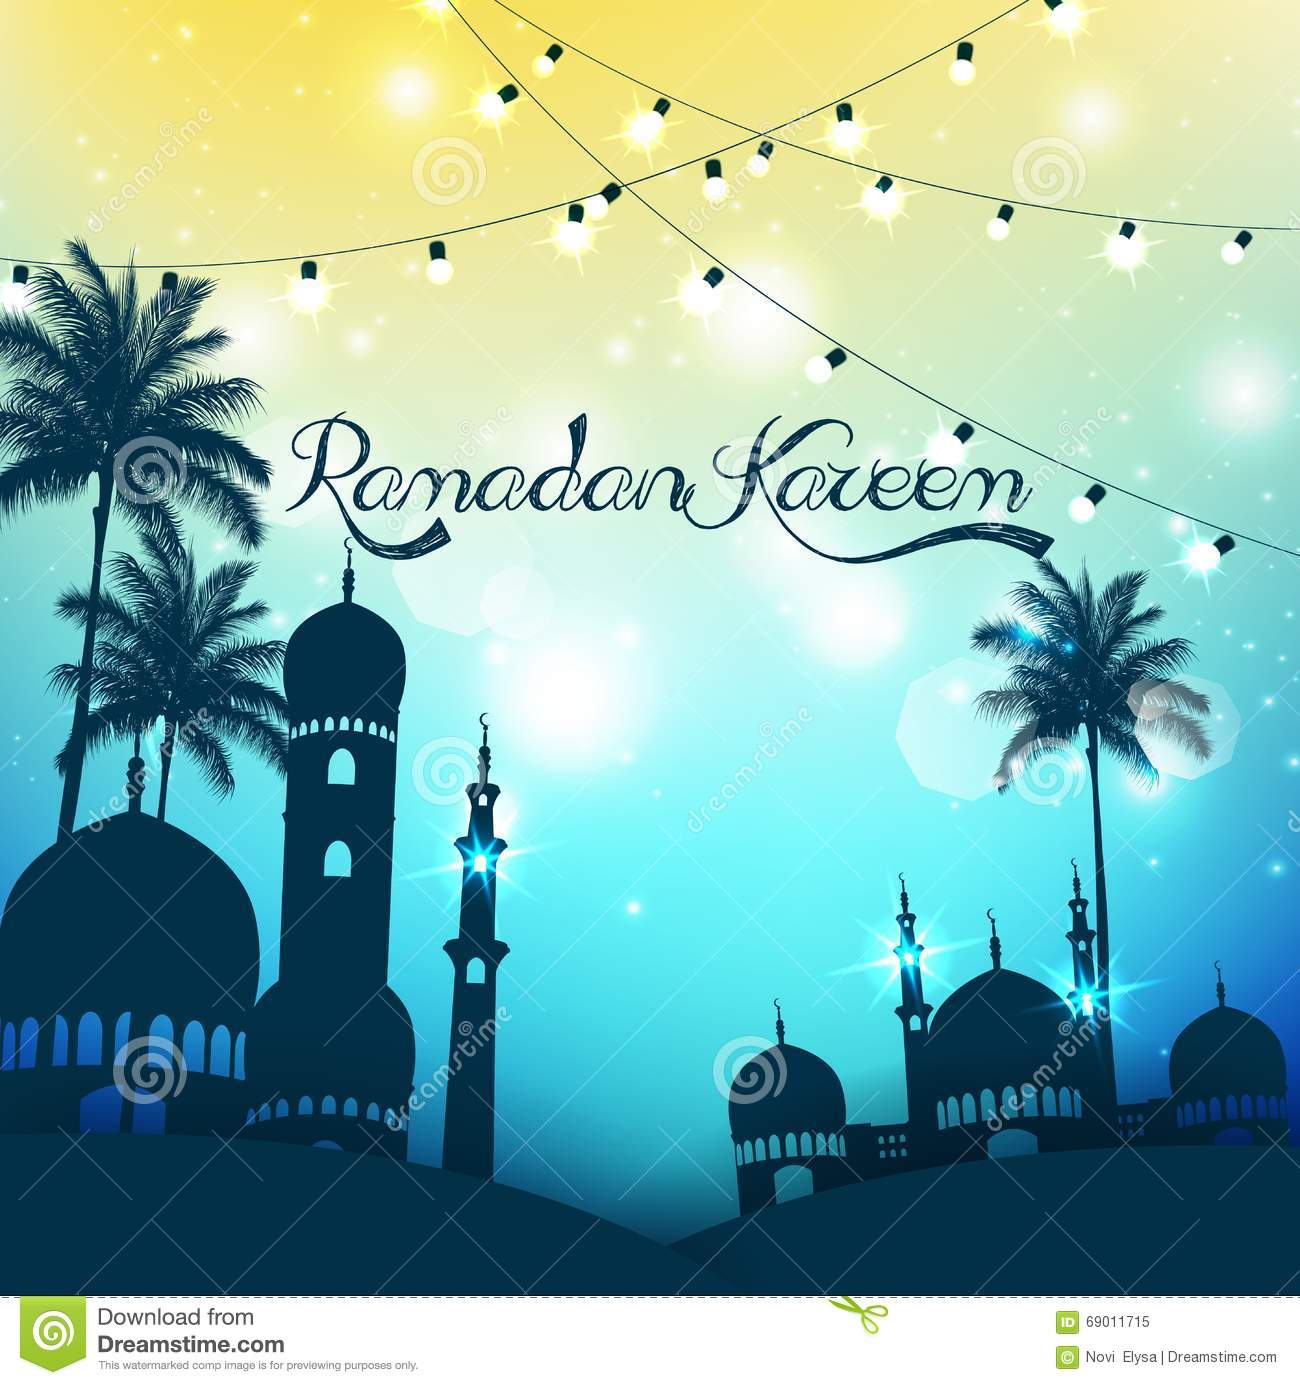 Mosque background for ramadan kareem stock photography image - Ramadan Kareem Background With Mosque And Palm Tree Royalty Free Stock Photo